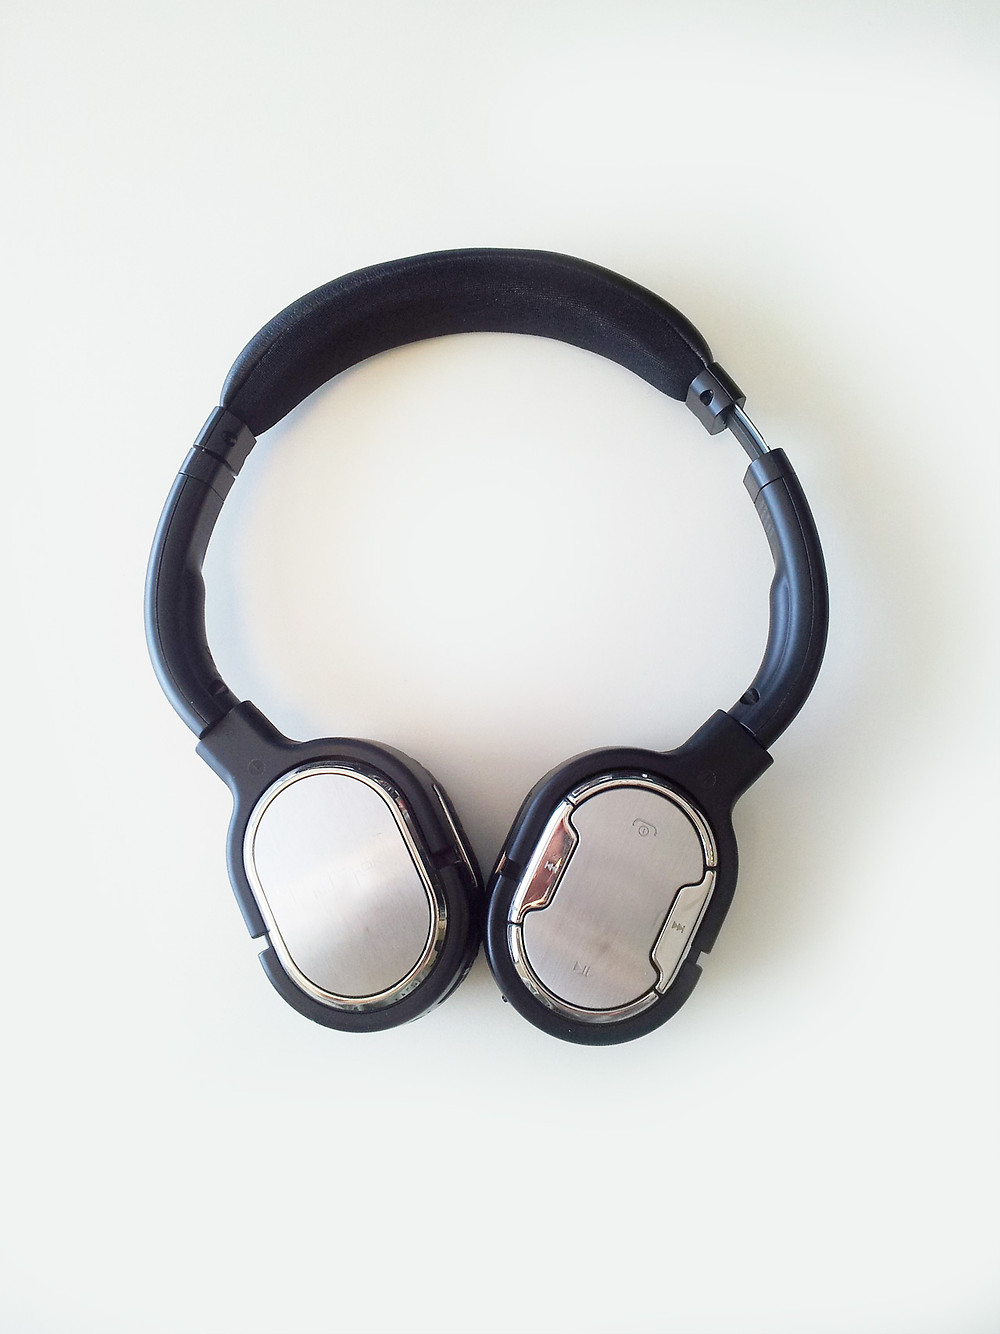 Set of headphones on a white background